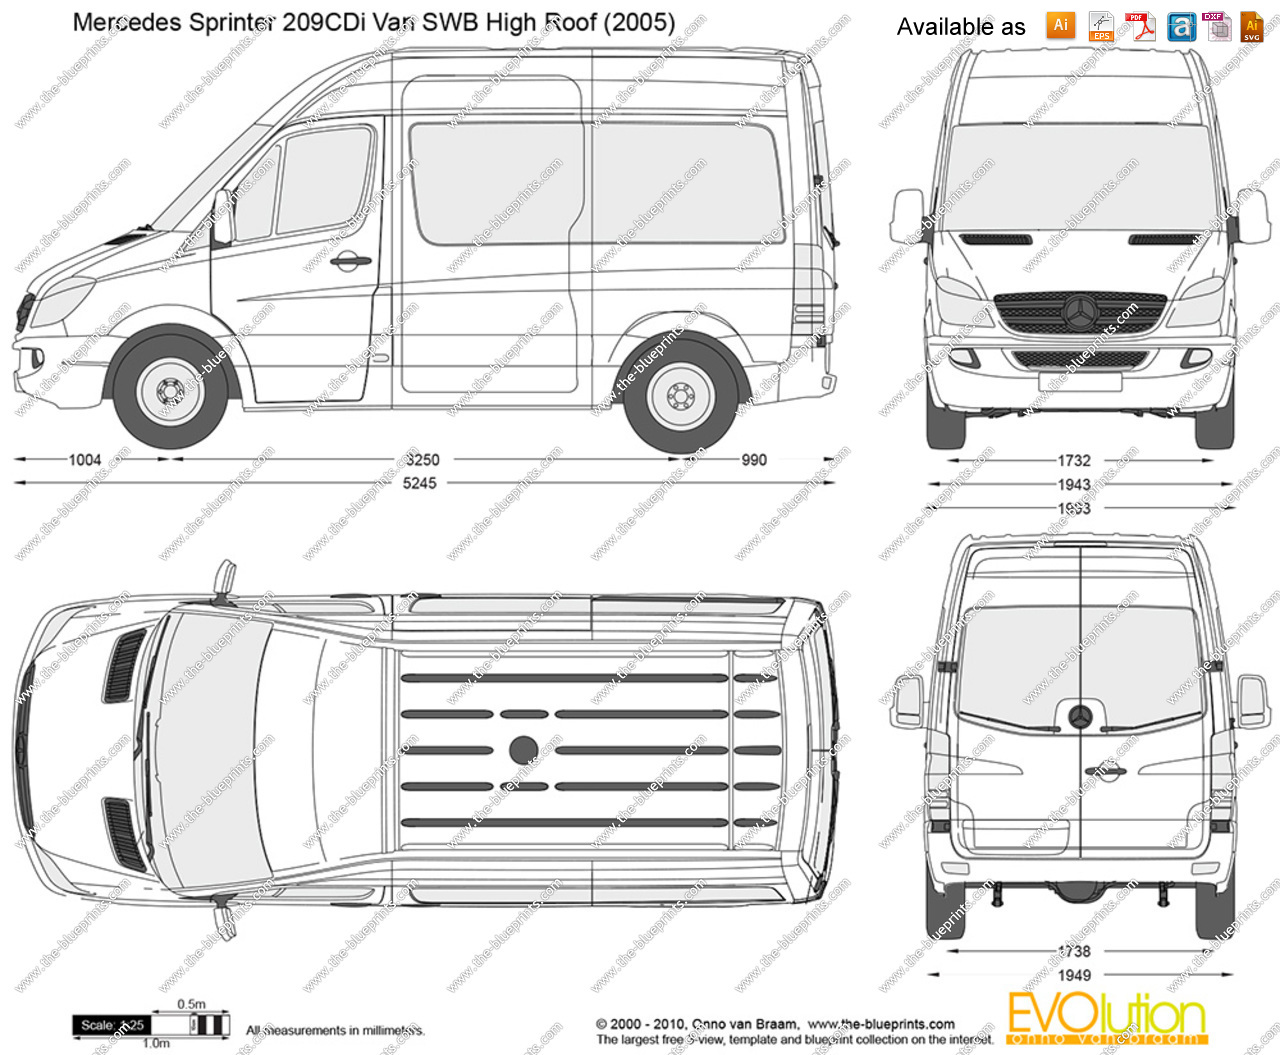 Mercedes Benz Sprinter 209 Technical Specifications